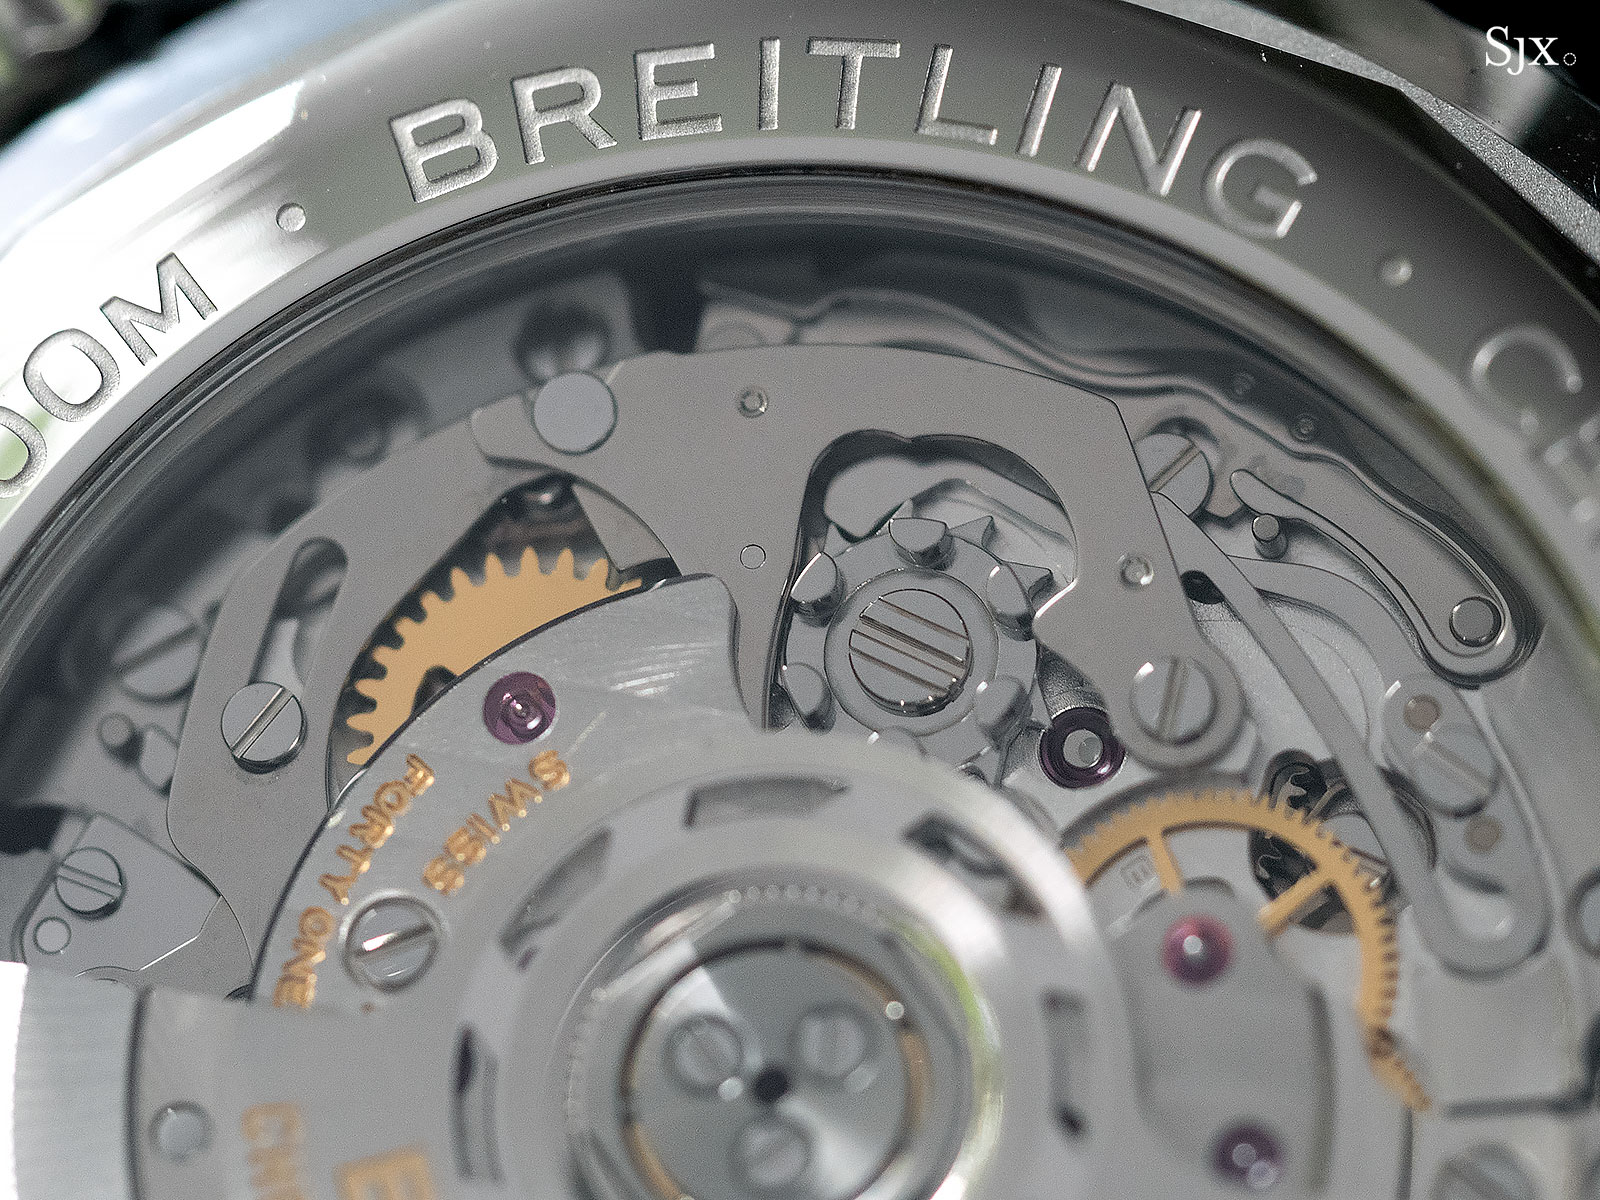 Breitling Premier B01 movement 3